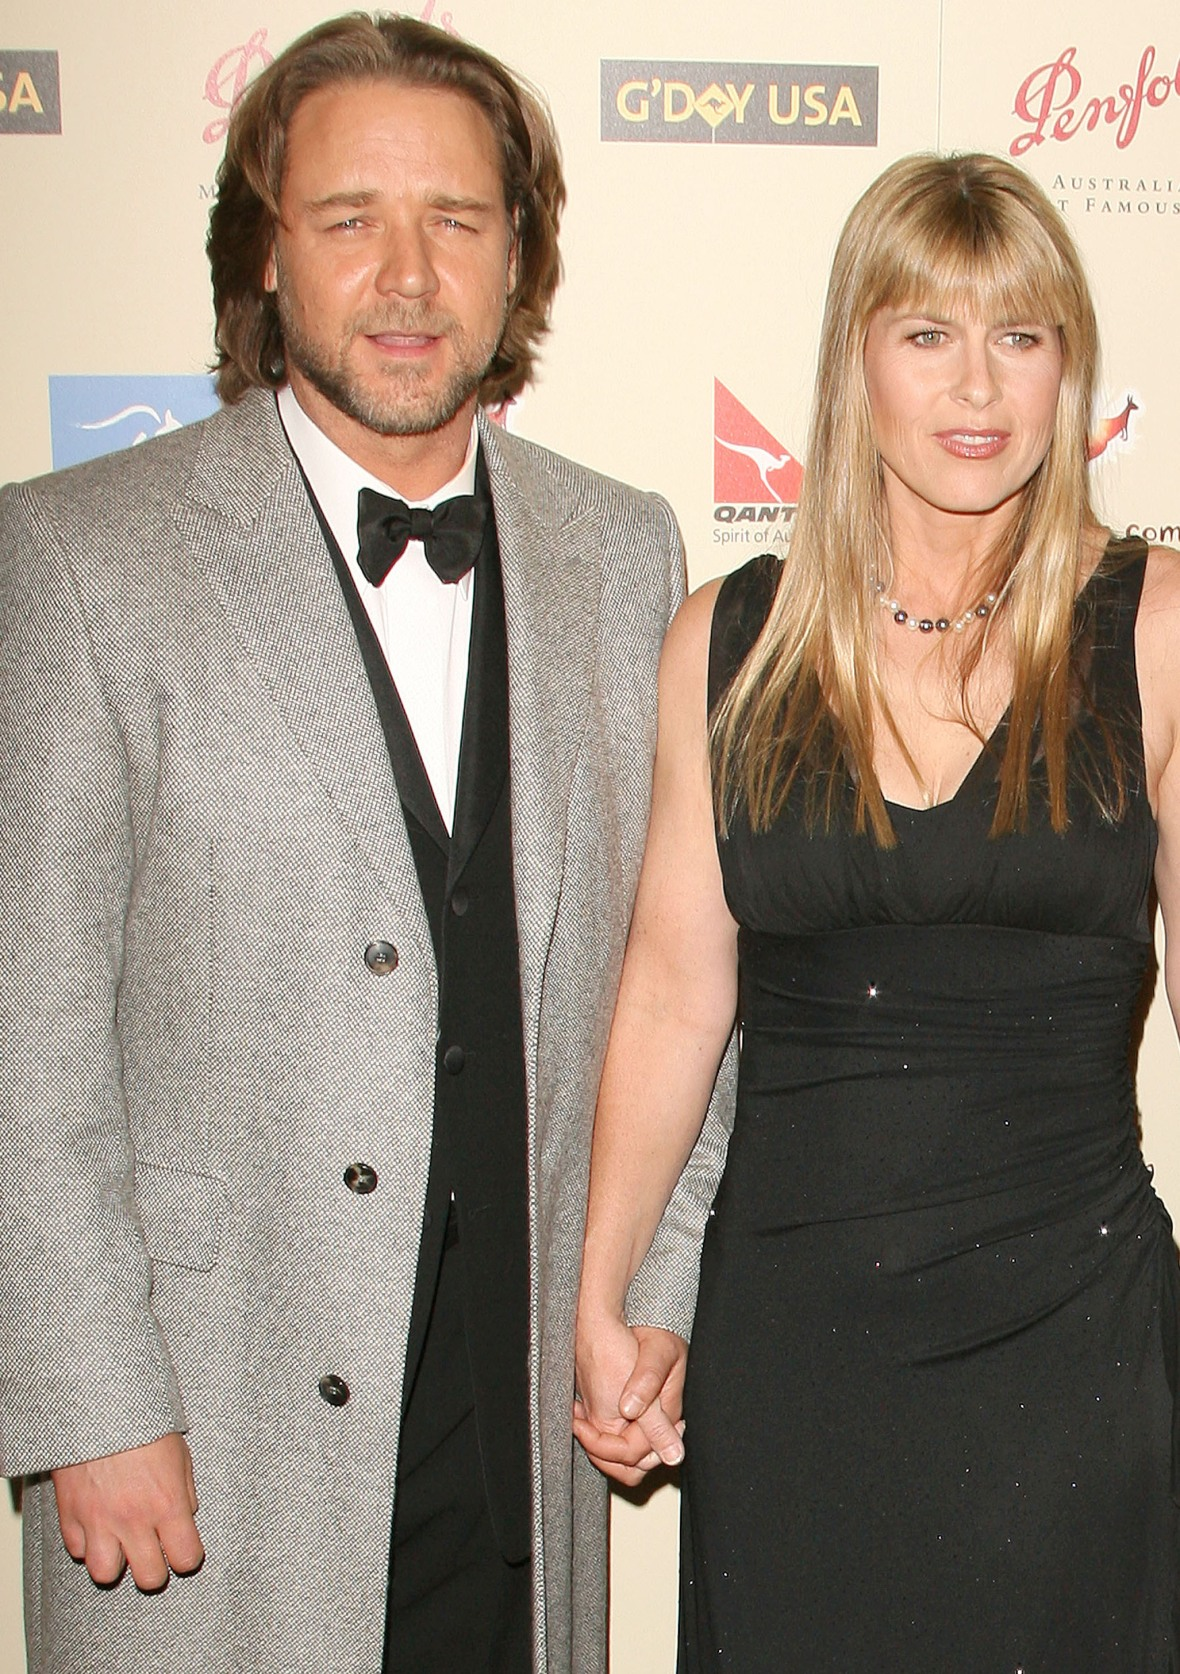 terri irwin russell crowe getty images